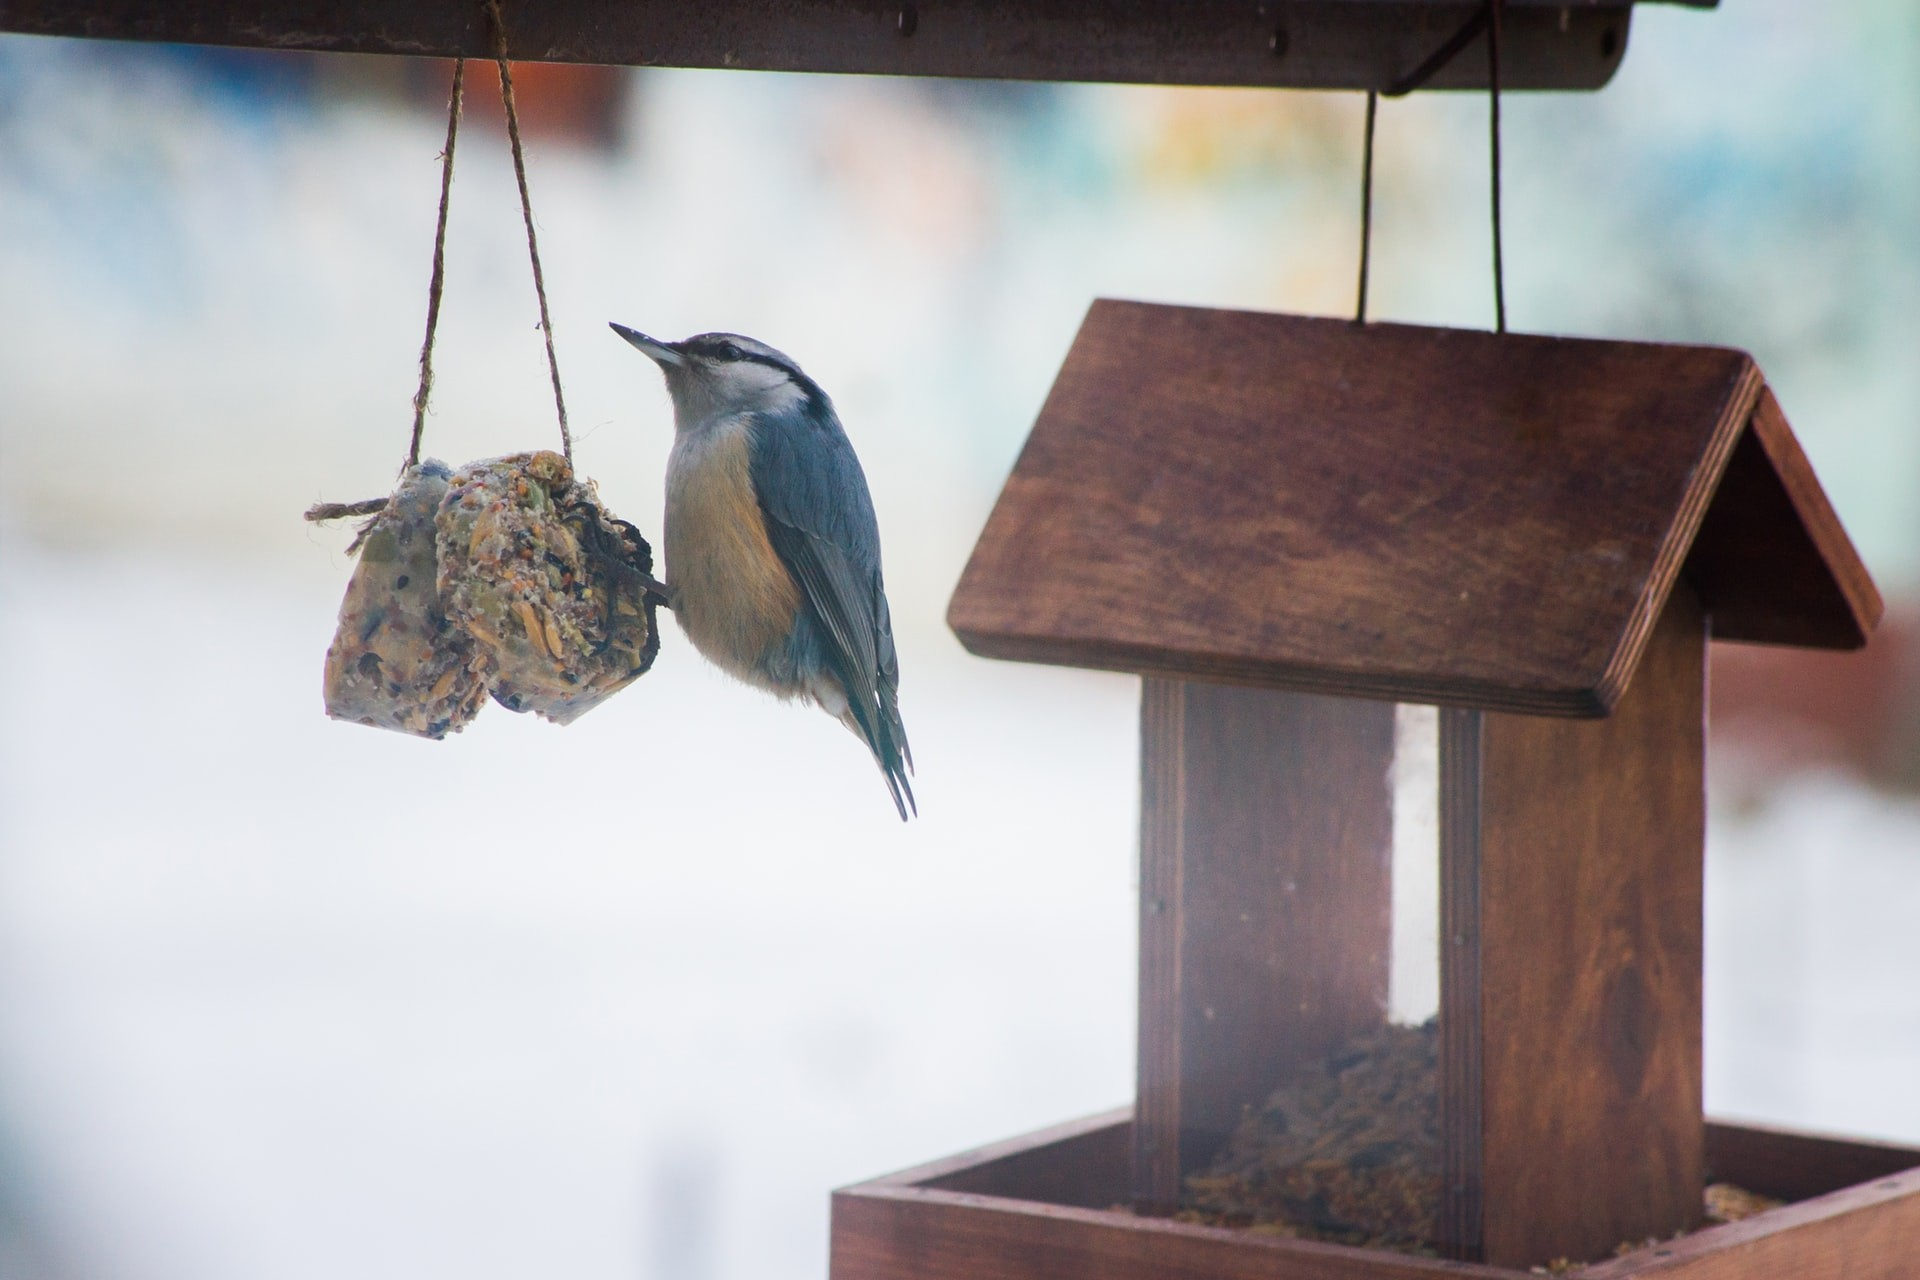 A bird sits on a birdseed ornament from earth day activities for kids.